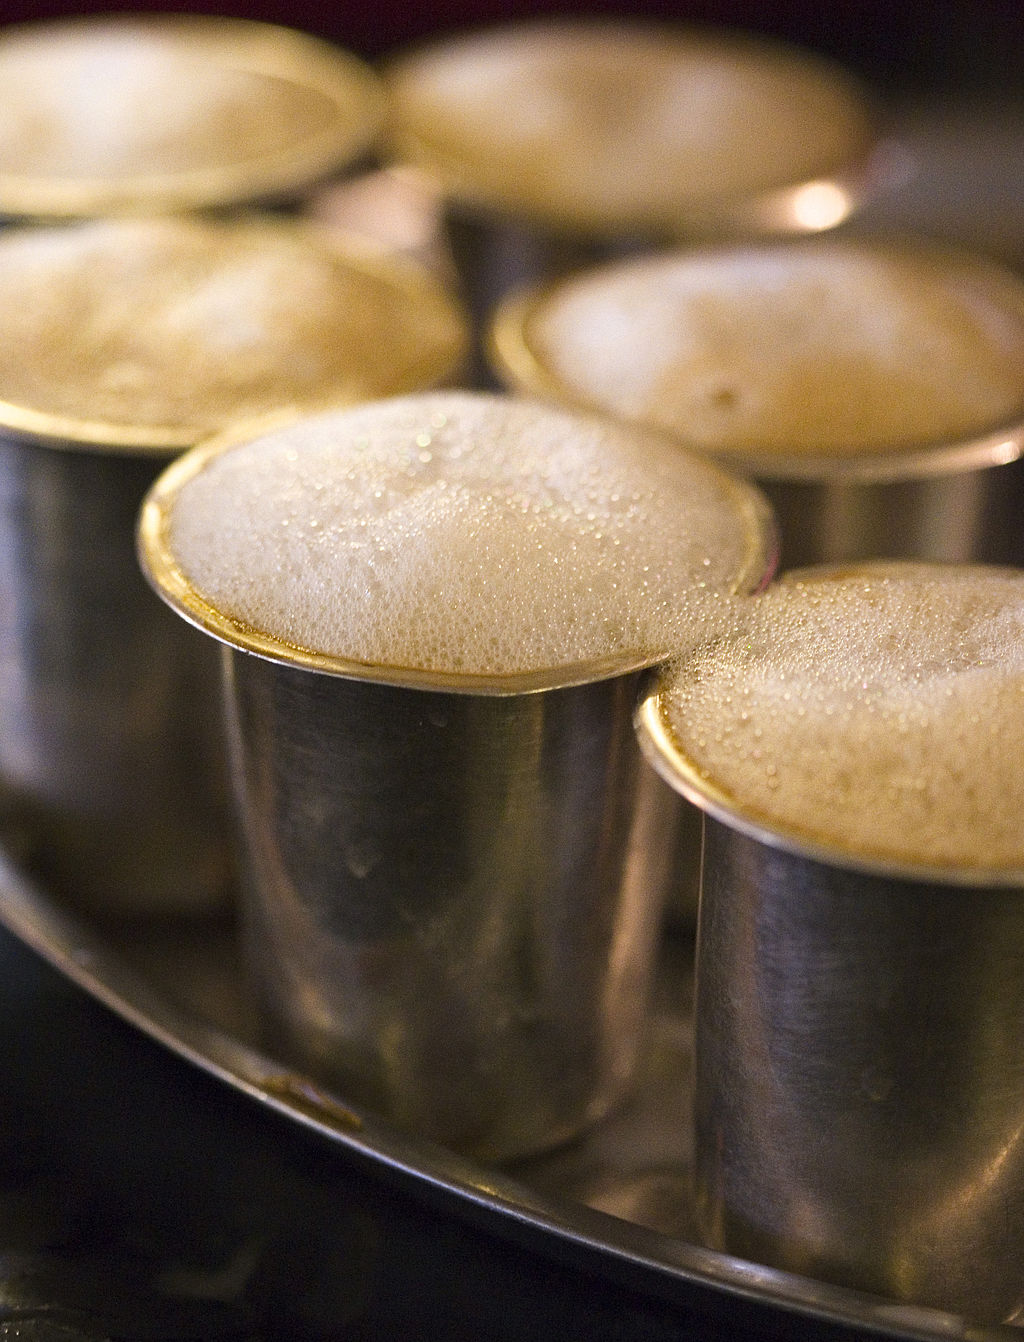 Foaming filter coffee in tumblers